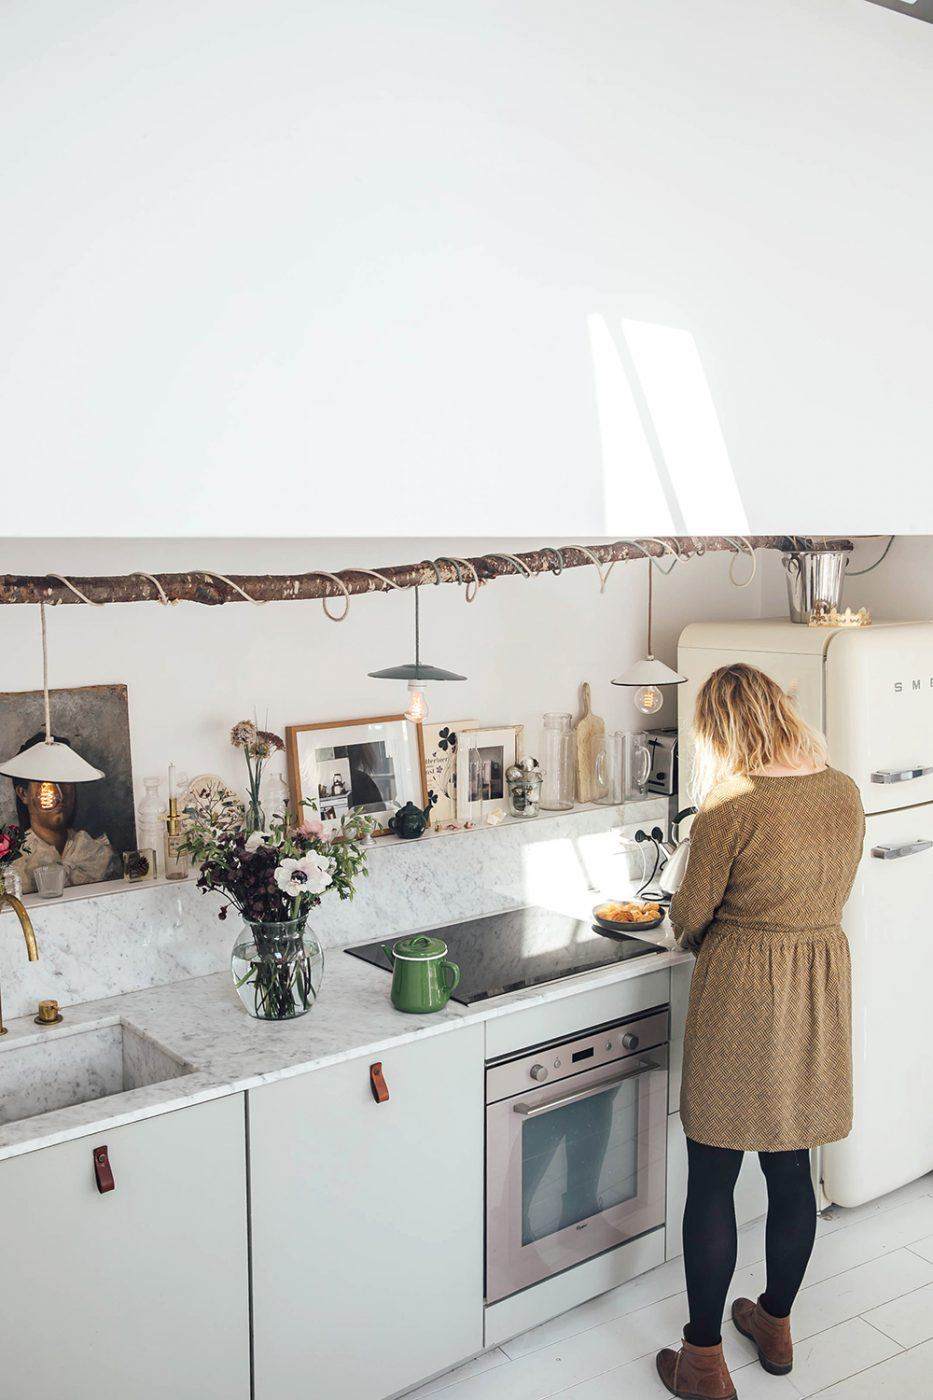 Home Tour Zoe de Las Cases Paris